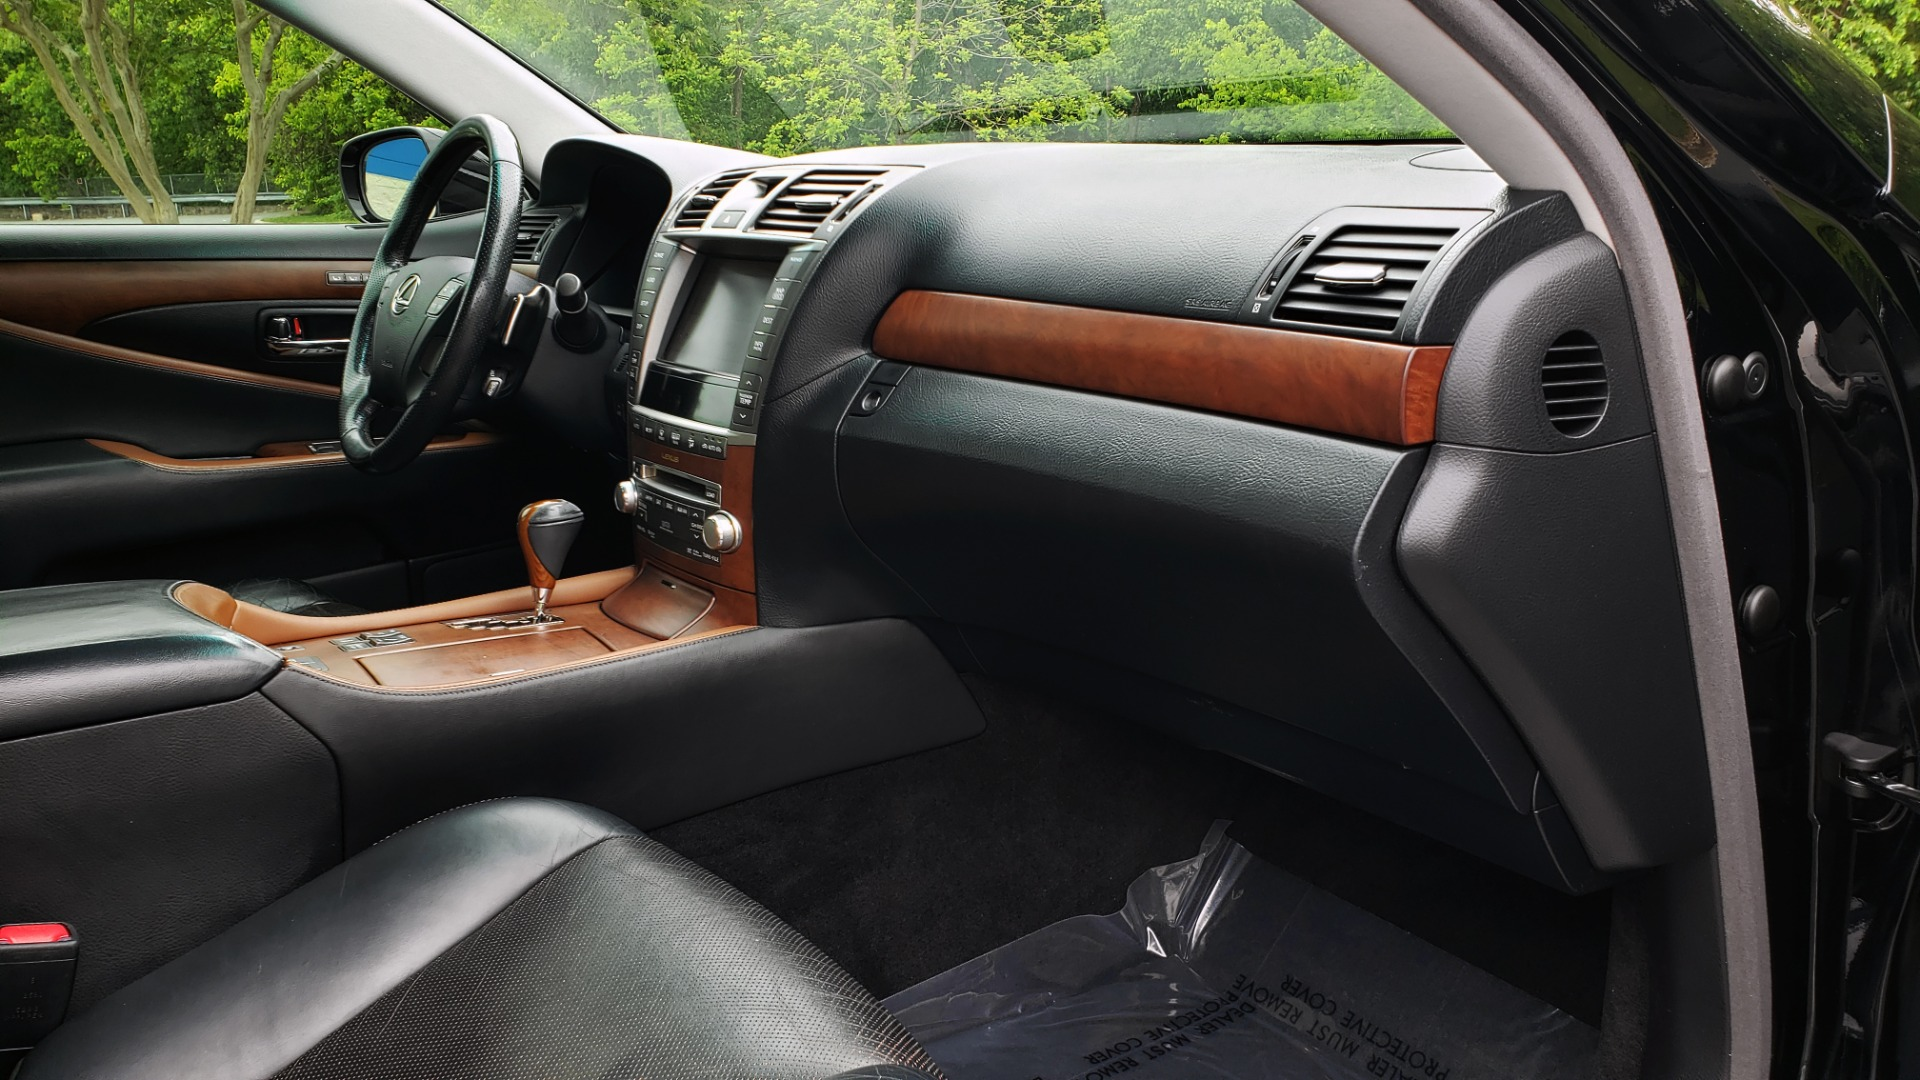 Used 2012 Lexus LS 460 COMFORT W/SPORT / VENT SEATS / NAV / MARK LEV SND / SUNROOF for sale Sold at Formula Imports in Charlotte NC 28227 69